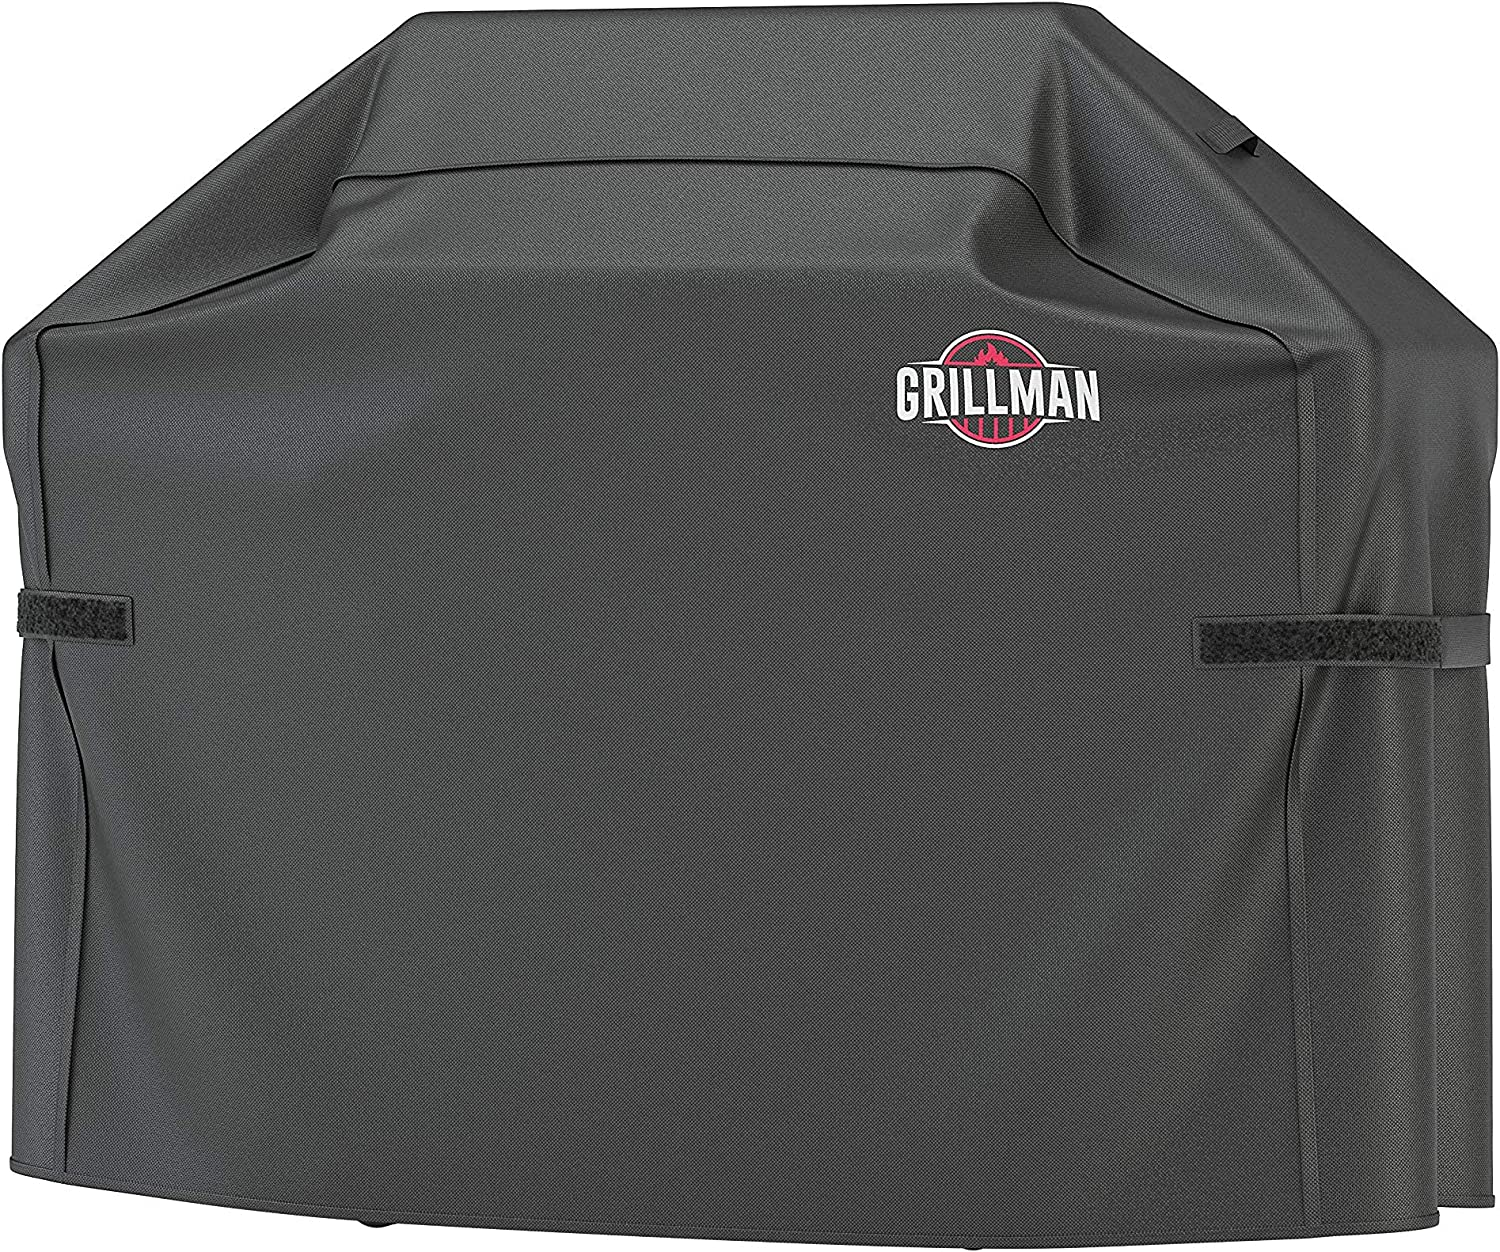 Grillman Premium (64 Inch) BBQ Grill Cover, Heavy-Duty Gas Grill Cover for Weber, Brinkmann, Char Broil etc. Rip-Proof, UV & Water-Resistant (64